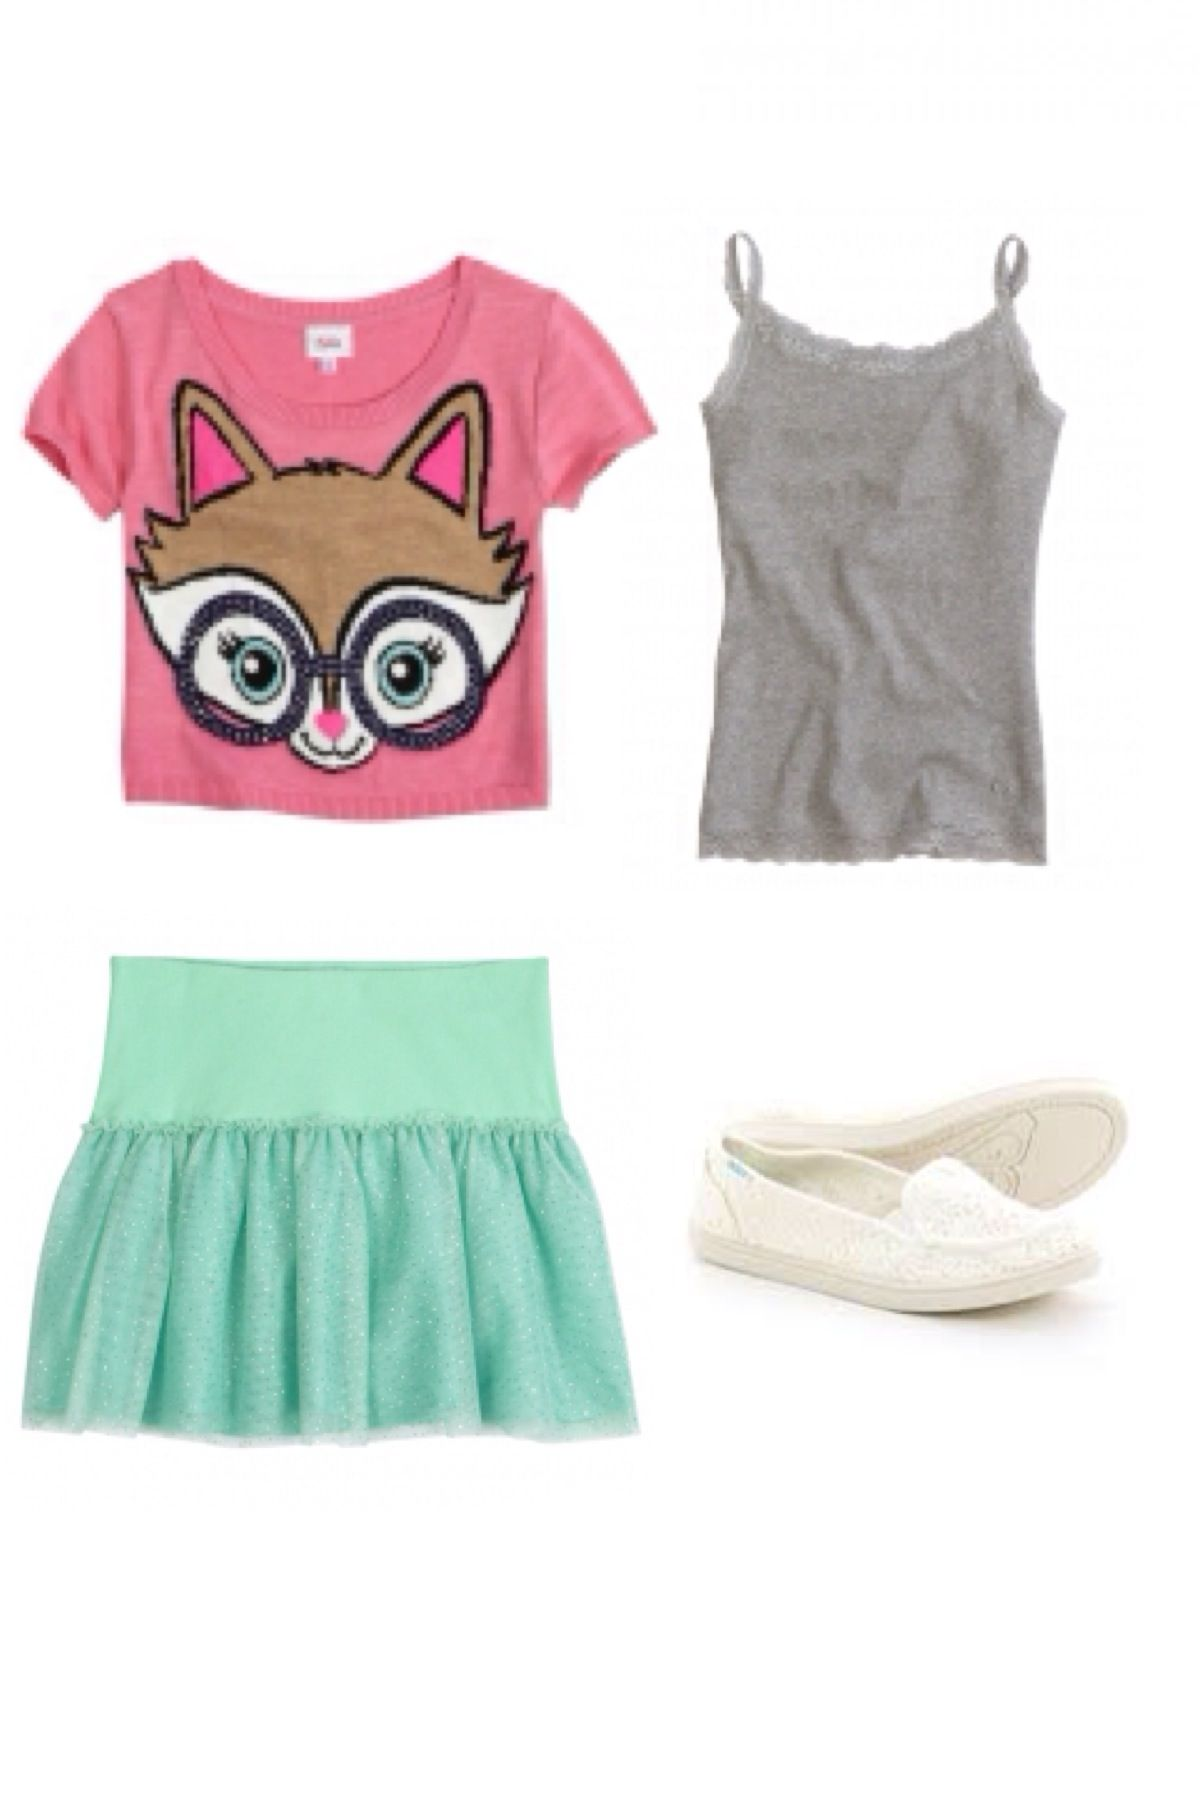 Middle School And Elementary School Back To School Outfits  Back